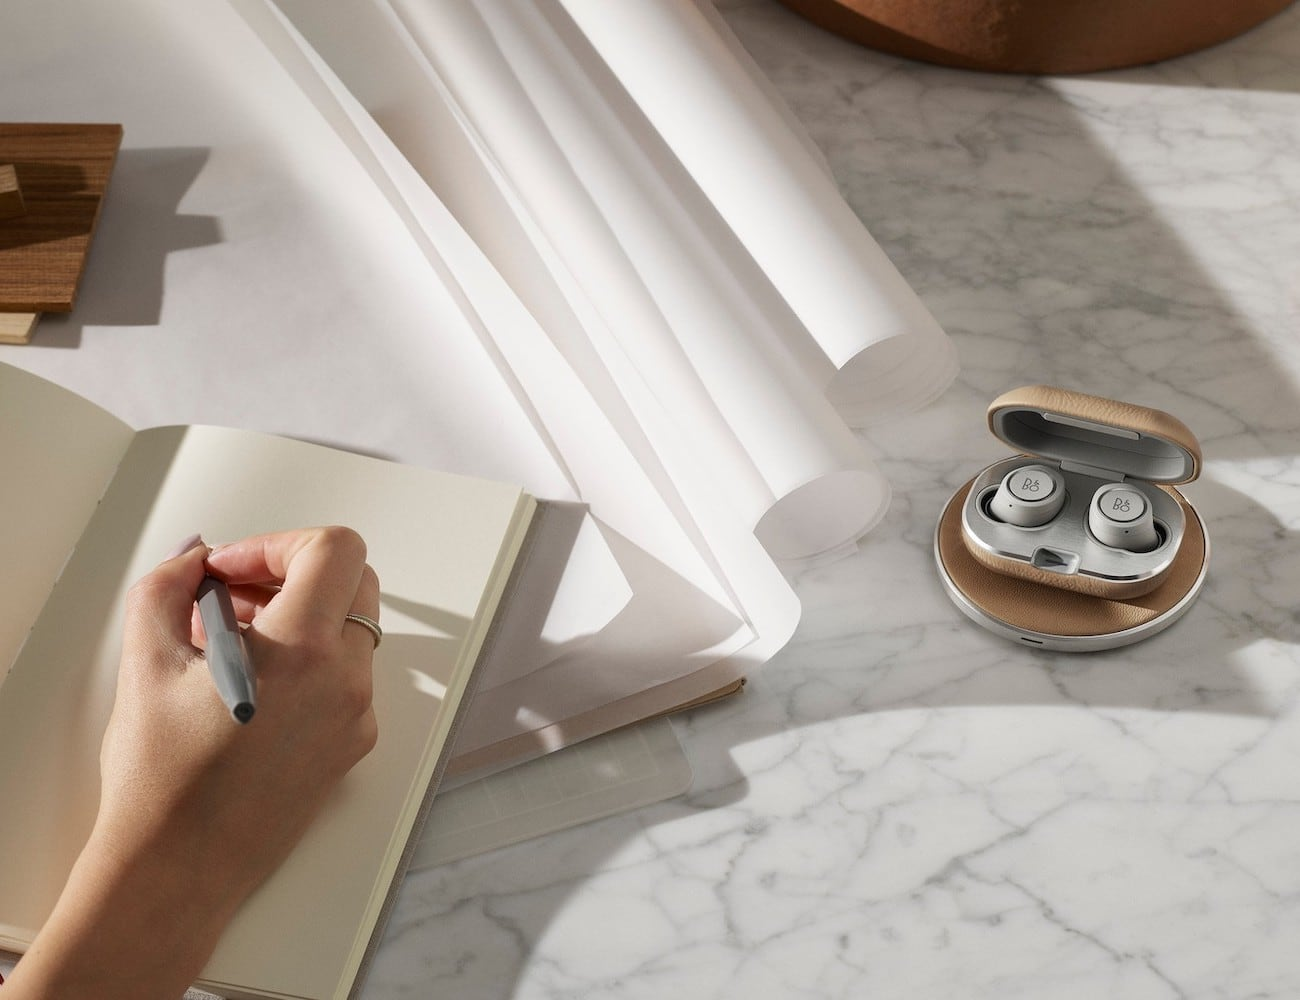 Bang & Olufsen Beoplay E8s 2.0 Wireless Earbuds